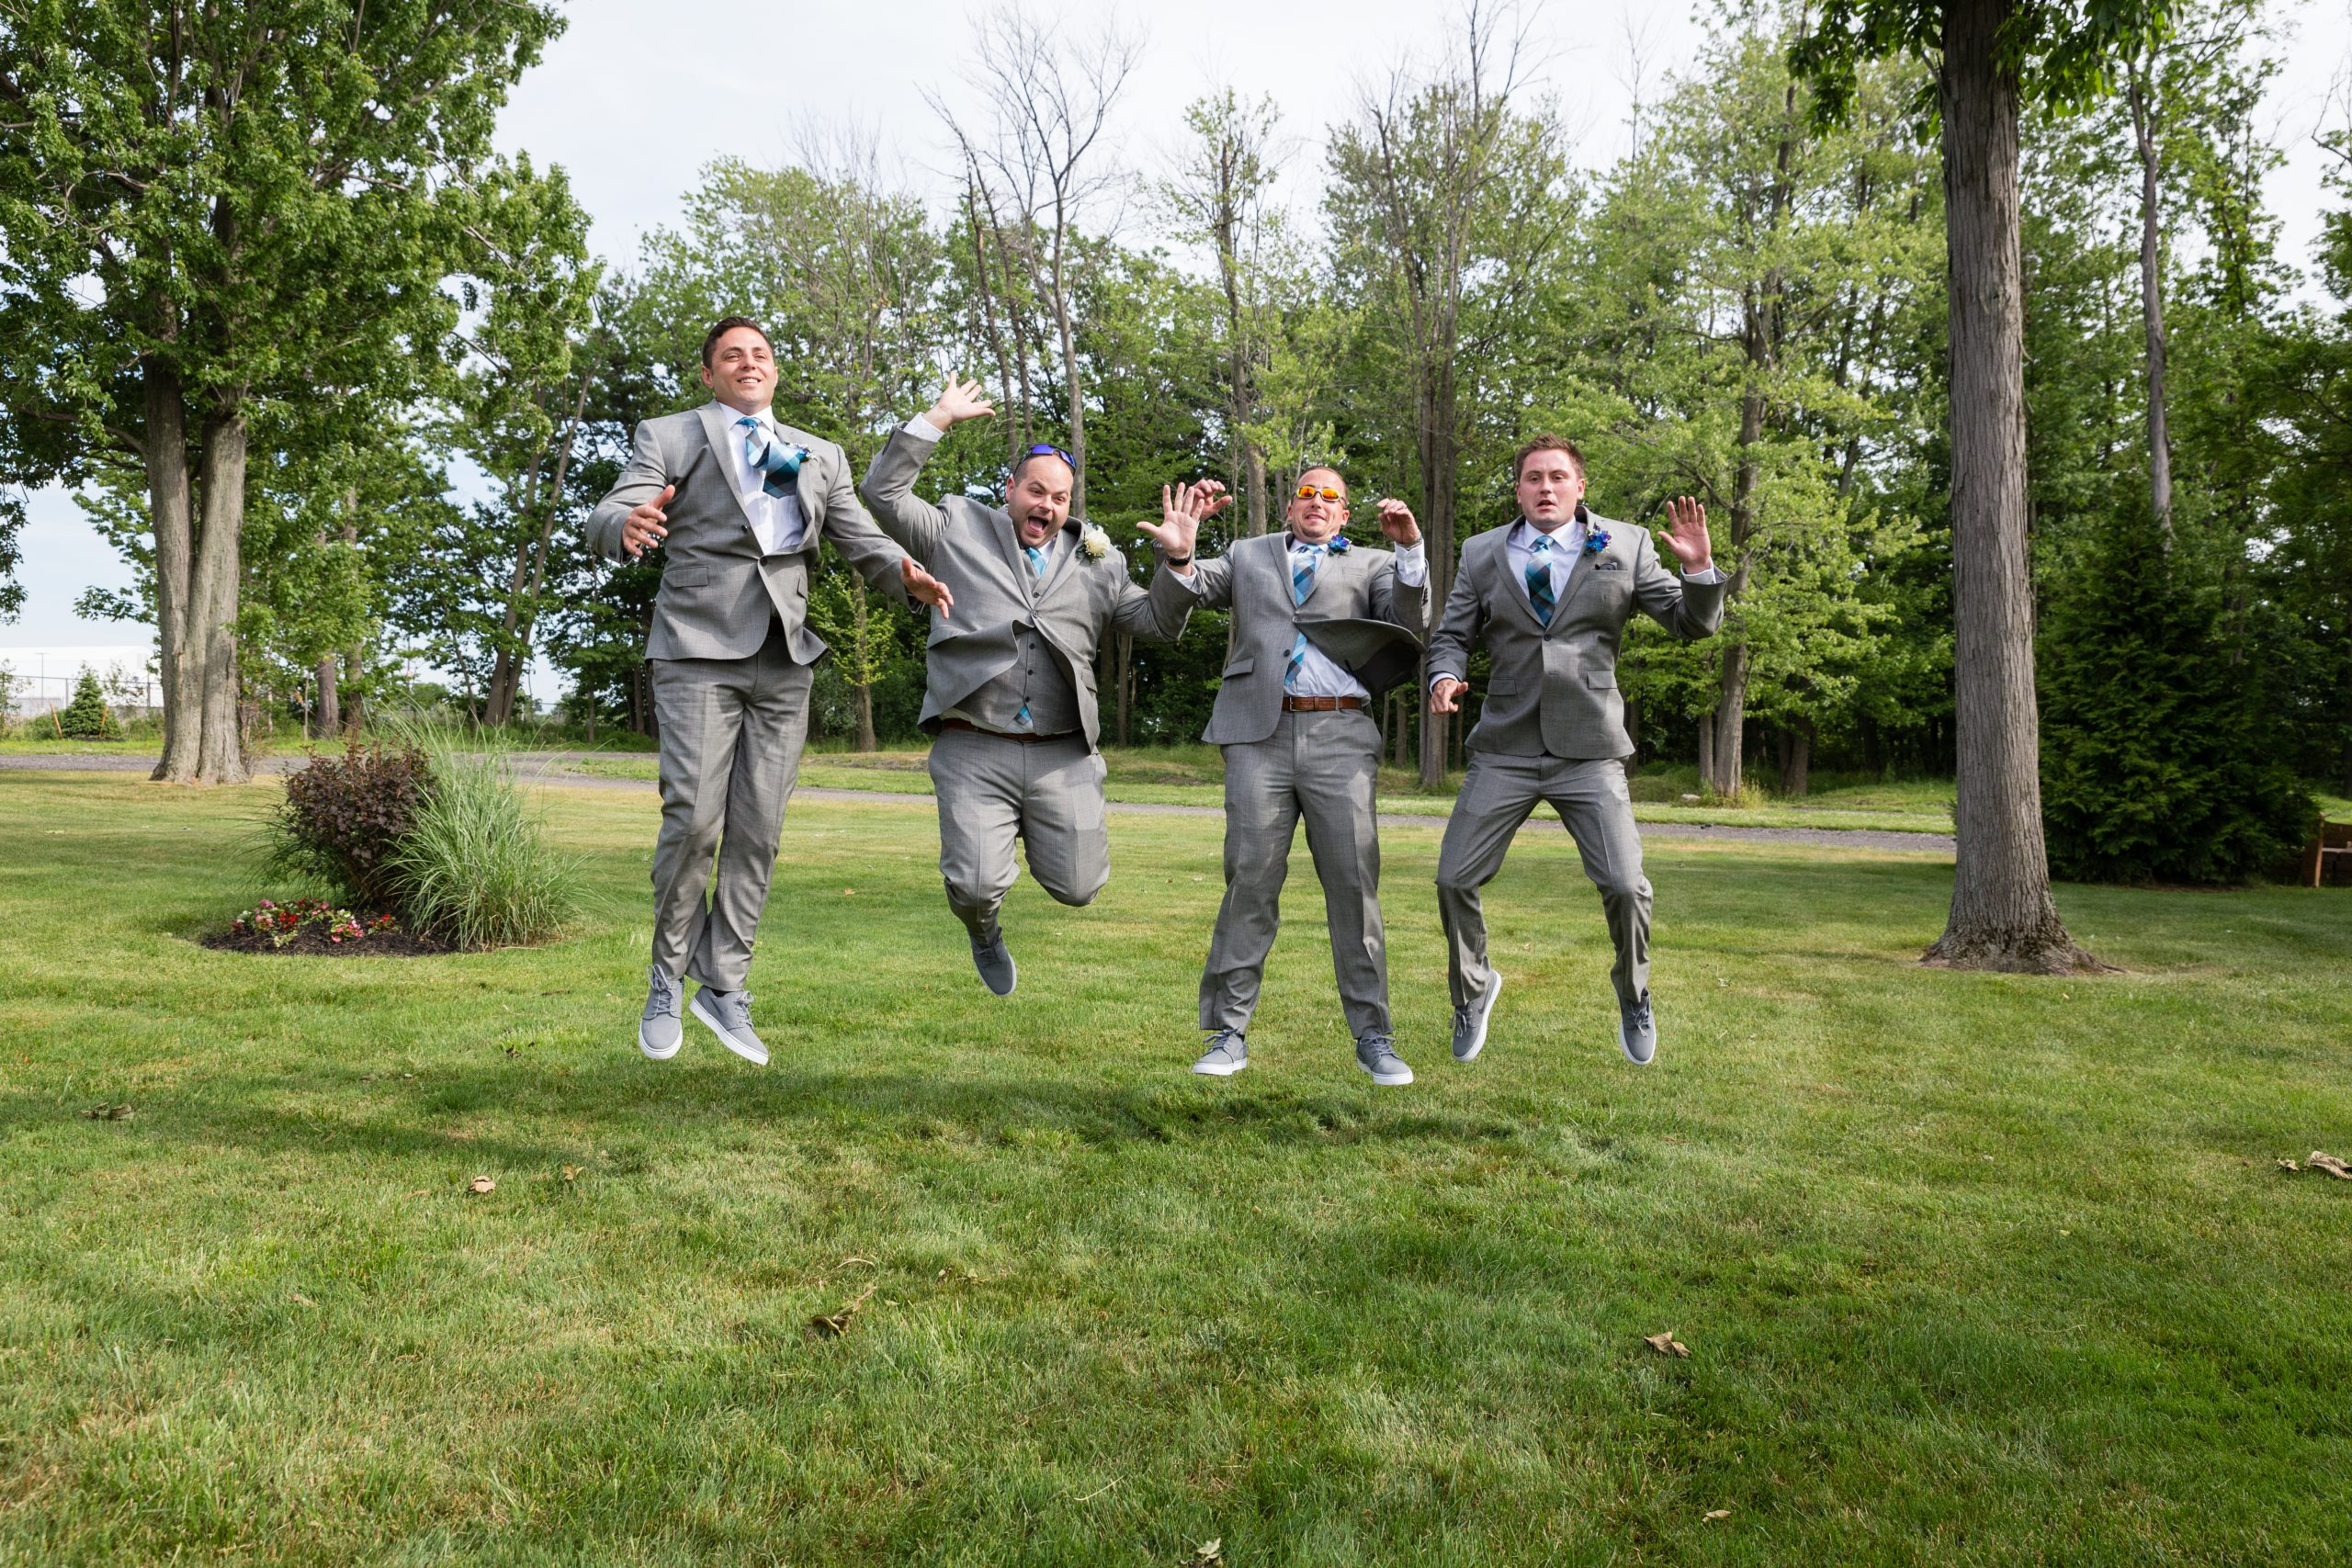 Funny wedding pose ideas with Groomsmen jumping Le Galleria Orchard Park NY by Fallesen Photography LLC